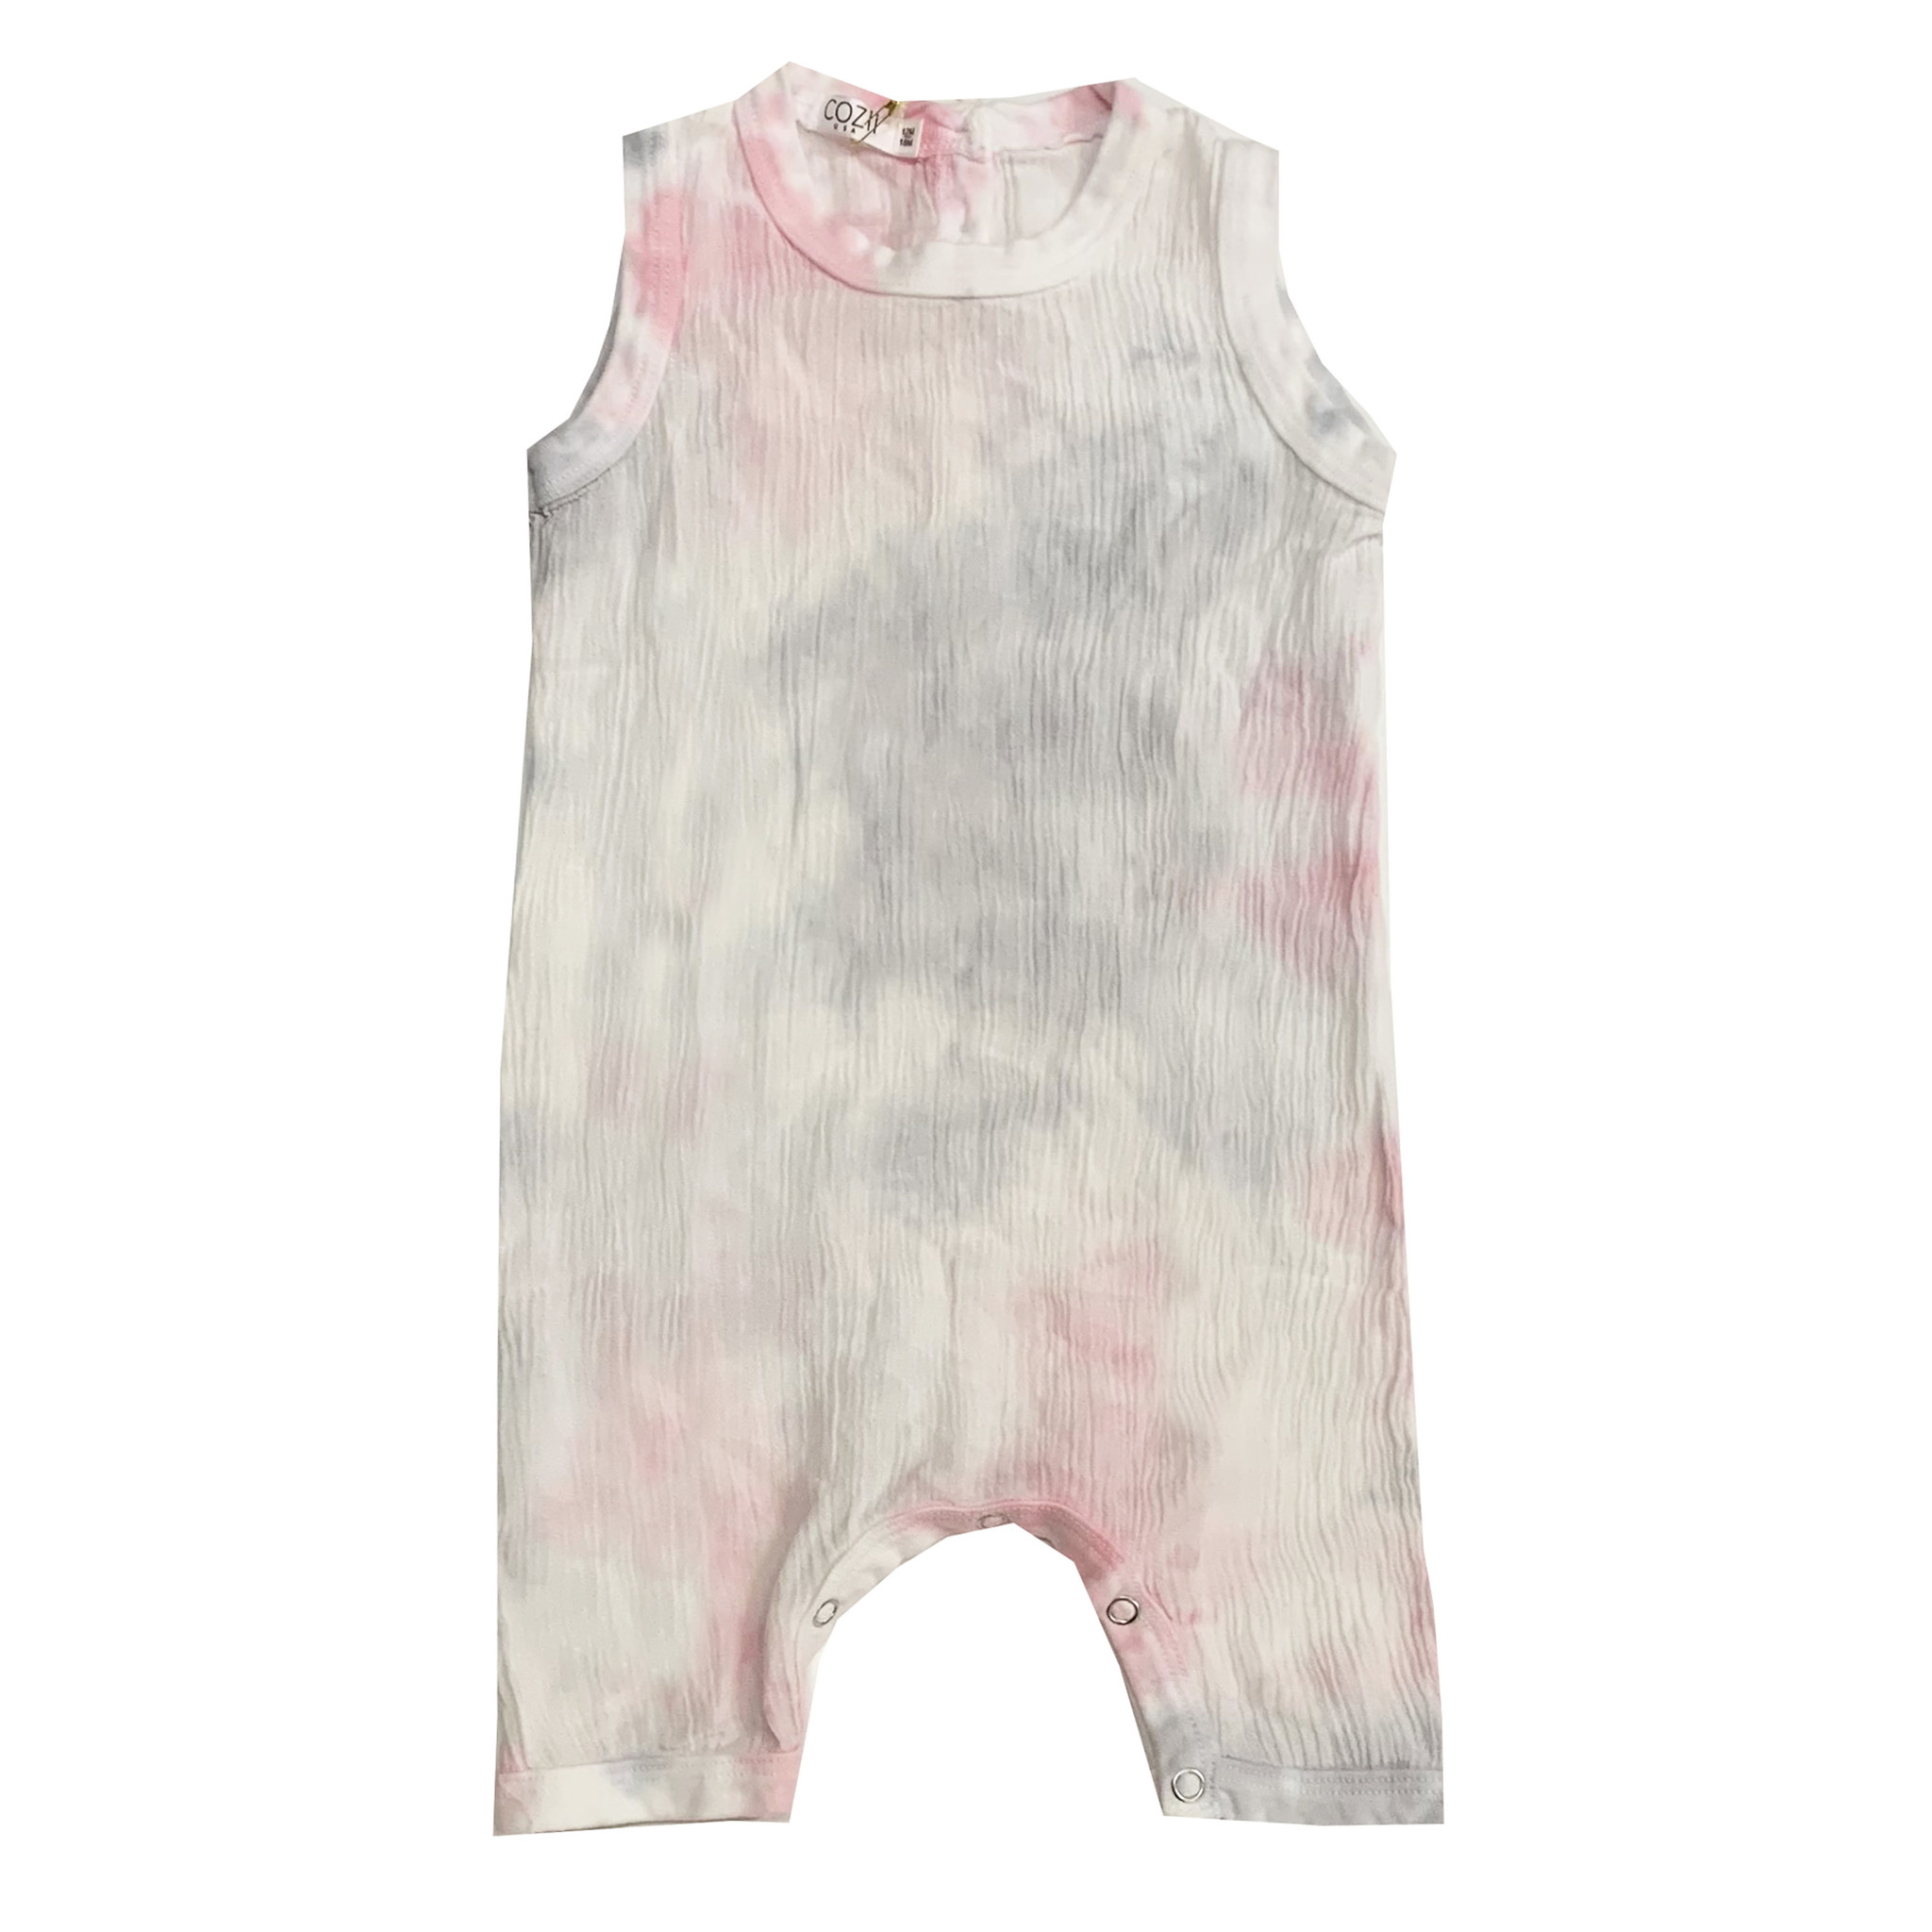 Cozii Pink & Grey Tie Dye Sleeveless Coverall